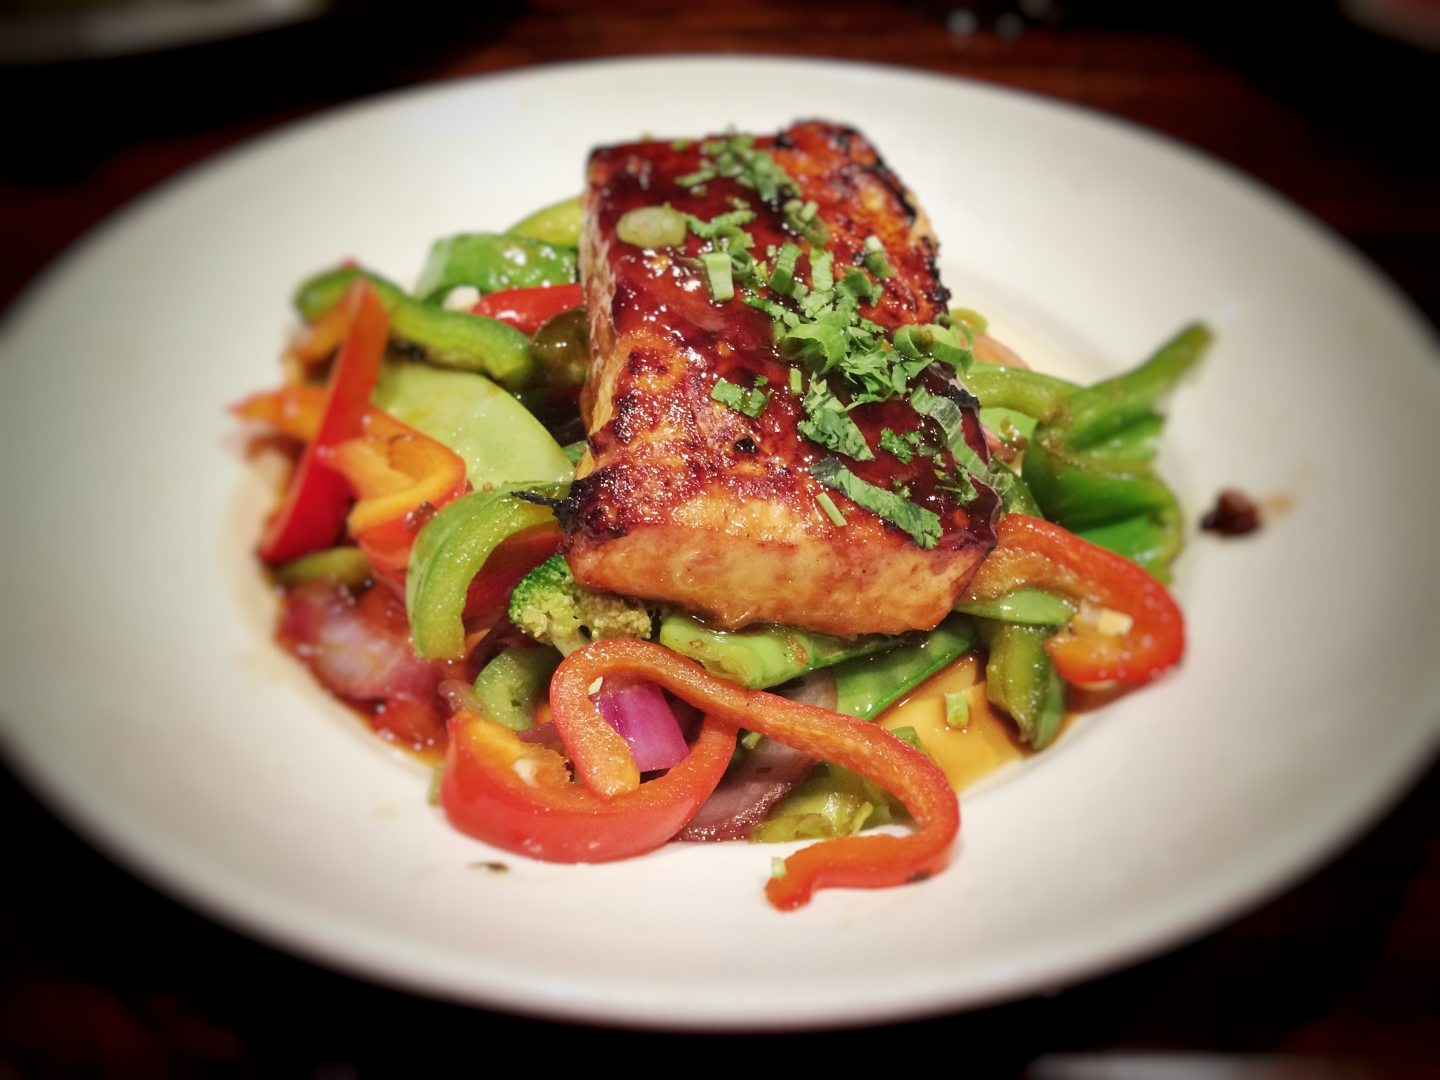 Gluten-free meals at the Black Walnut Cafe